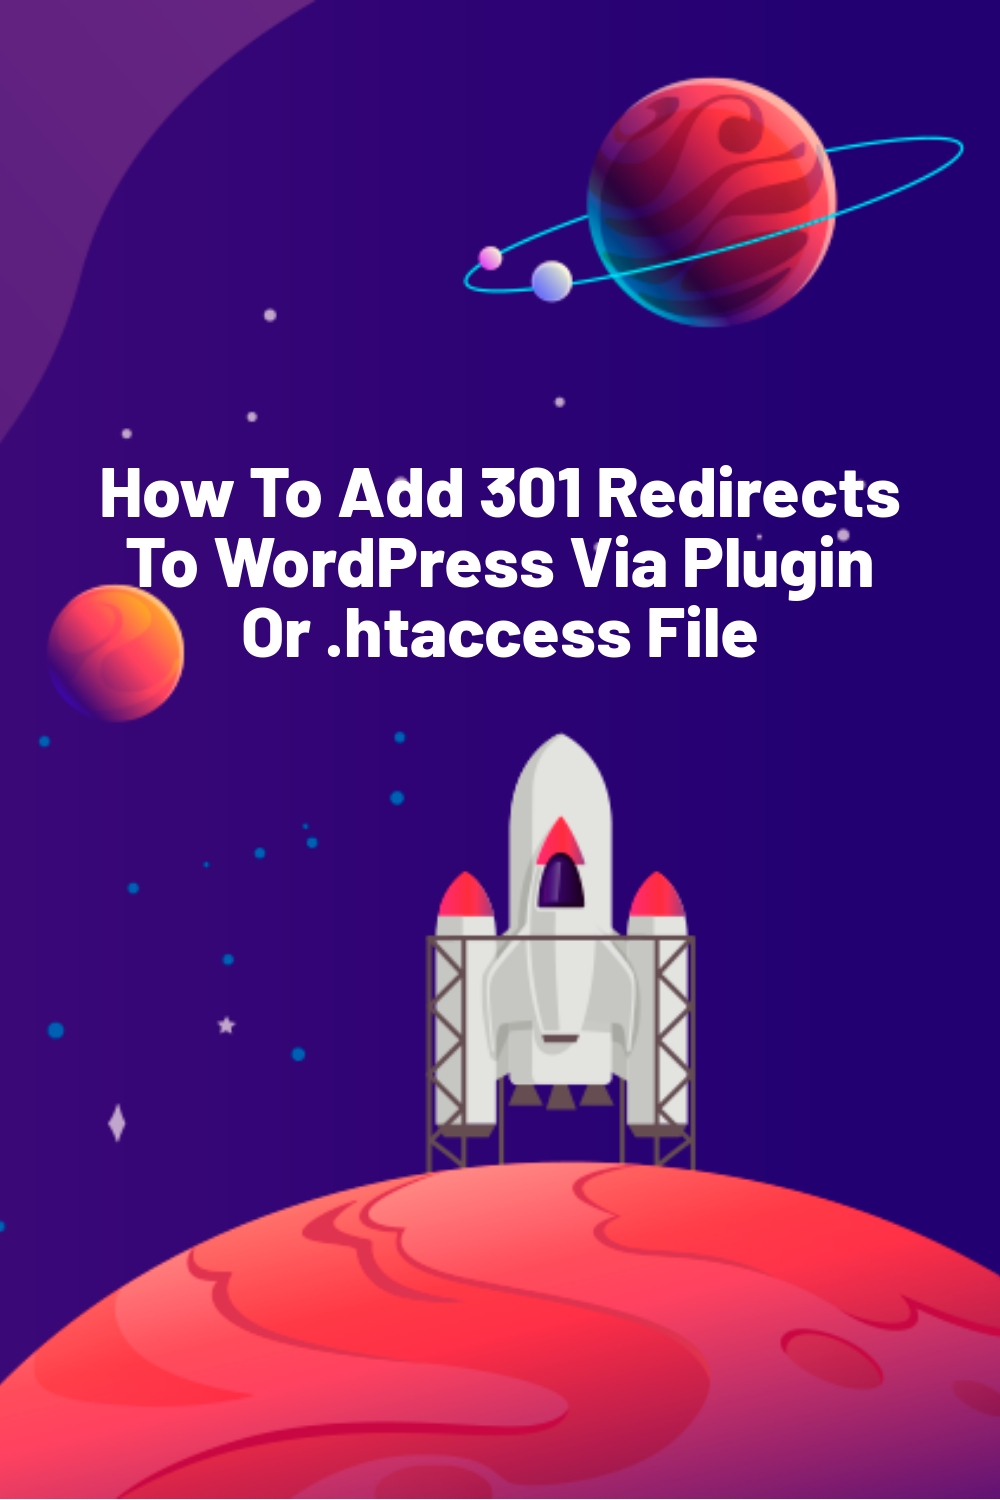 How To Add 301 Redirects To WordPress Via Plugin Or .htaccess File